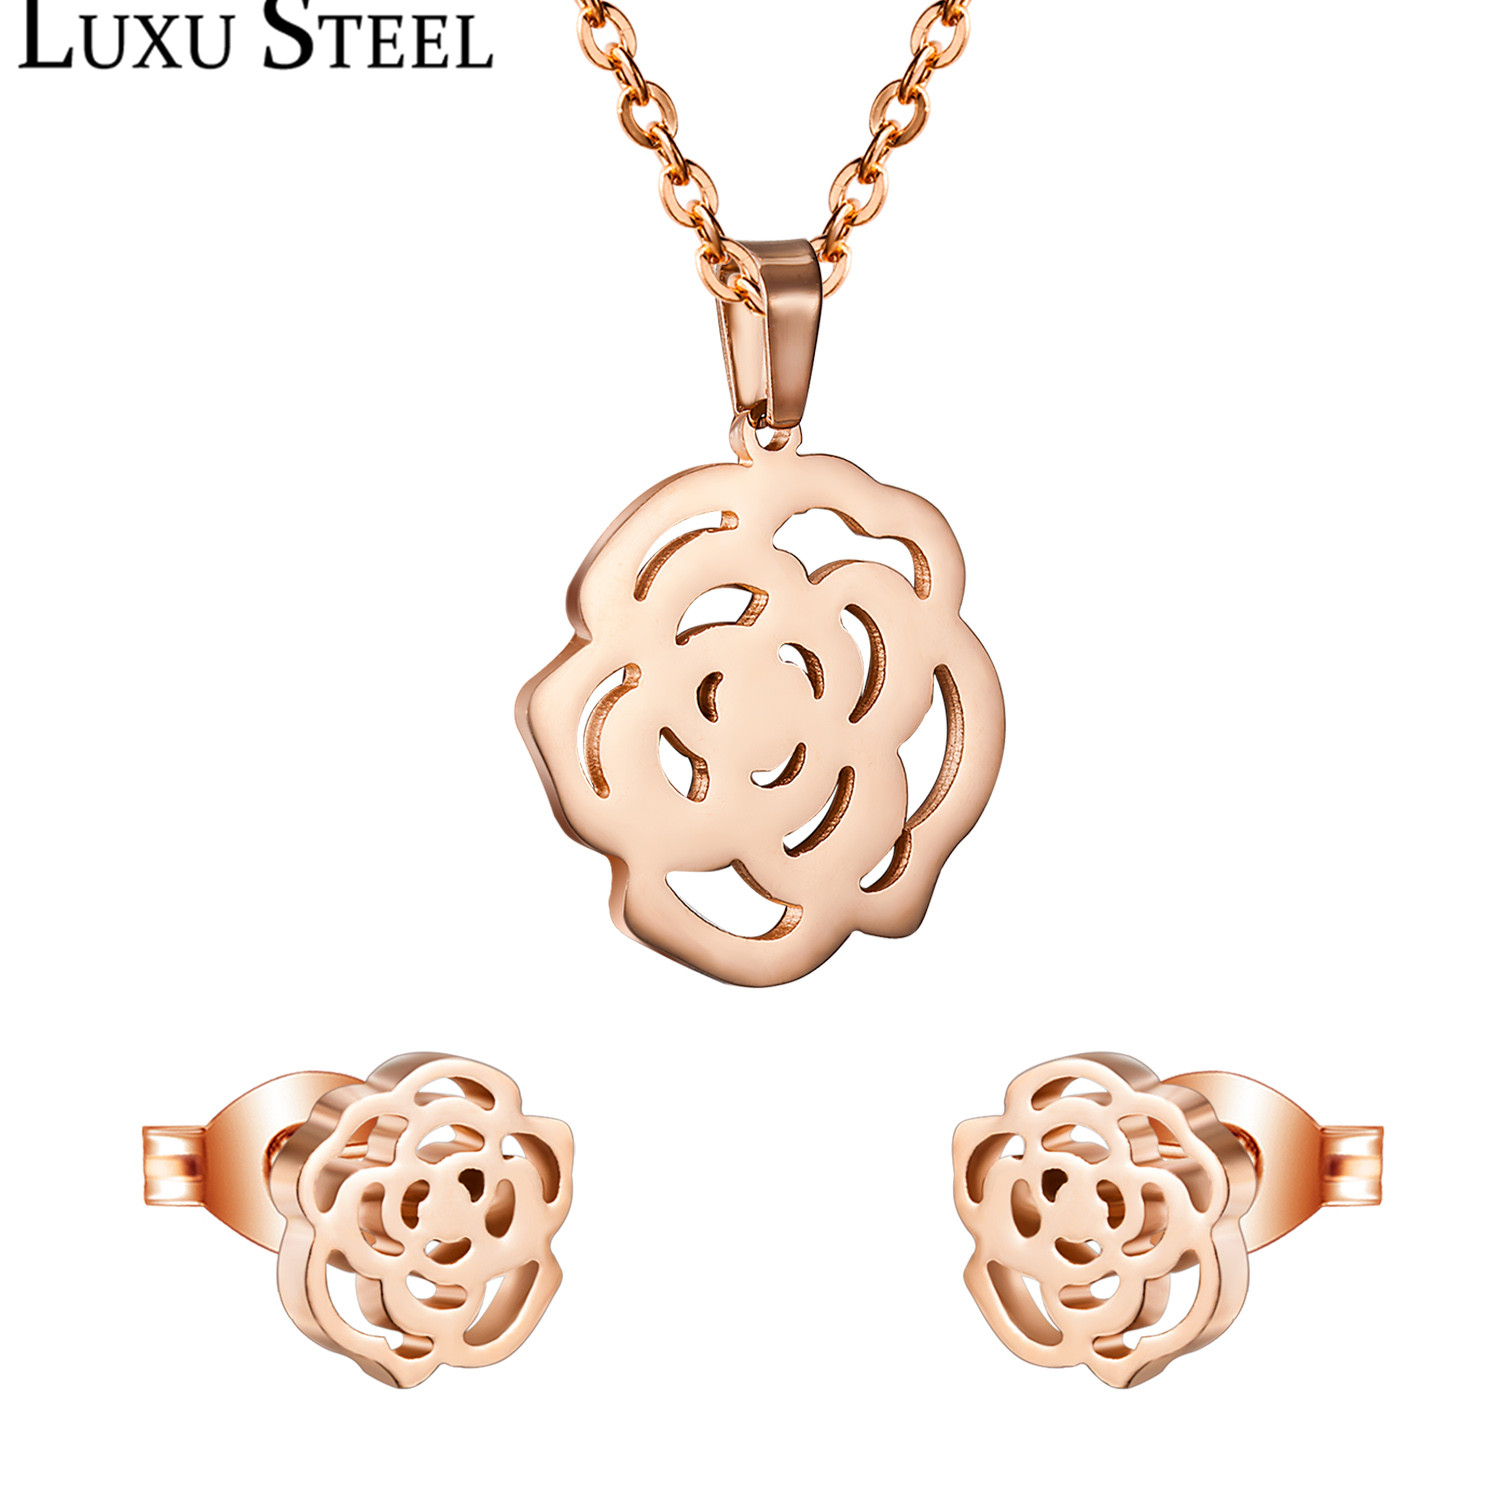 LUXUSTEEL Fashion Necklace Earring Sets Stainless Steel Gold Silver Rose Color Flower Pendant With Free 45cm Chain Necklaces